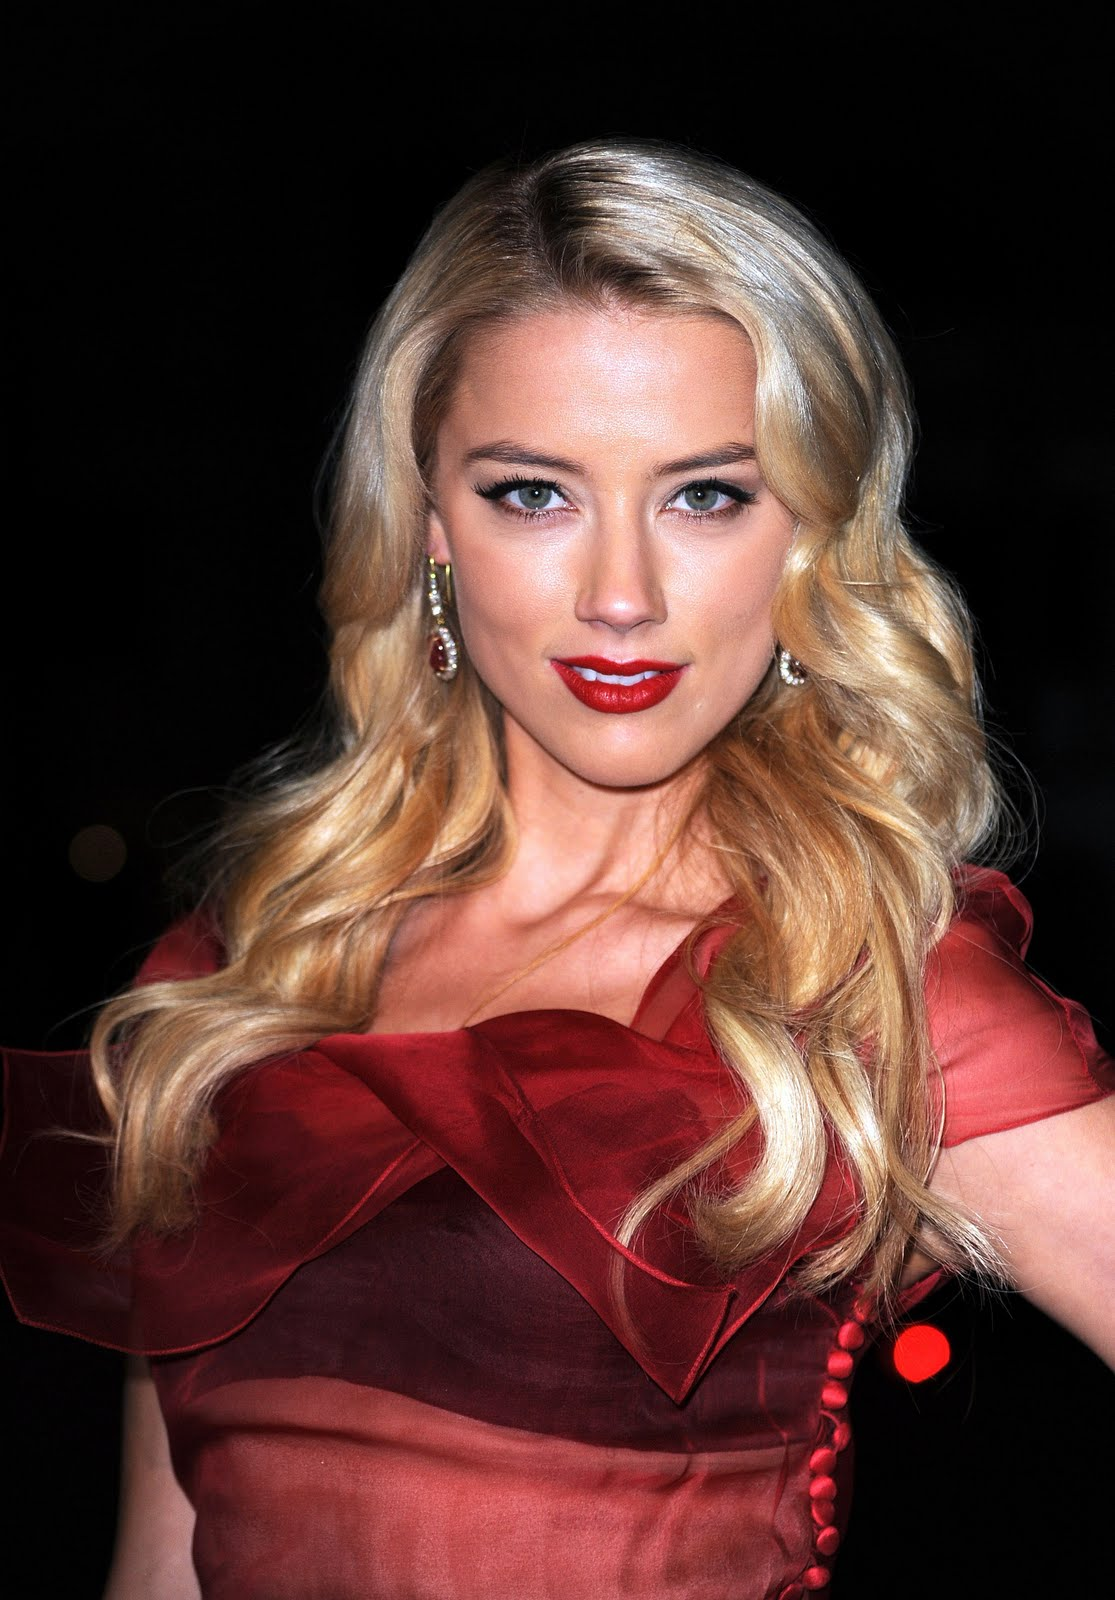 Amber Heard Is The Most Scientifically Beautiful Woman: Wallpaper World: Amber Heard Beautiful Photo By The Art Of